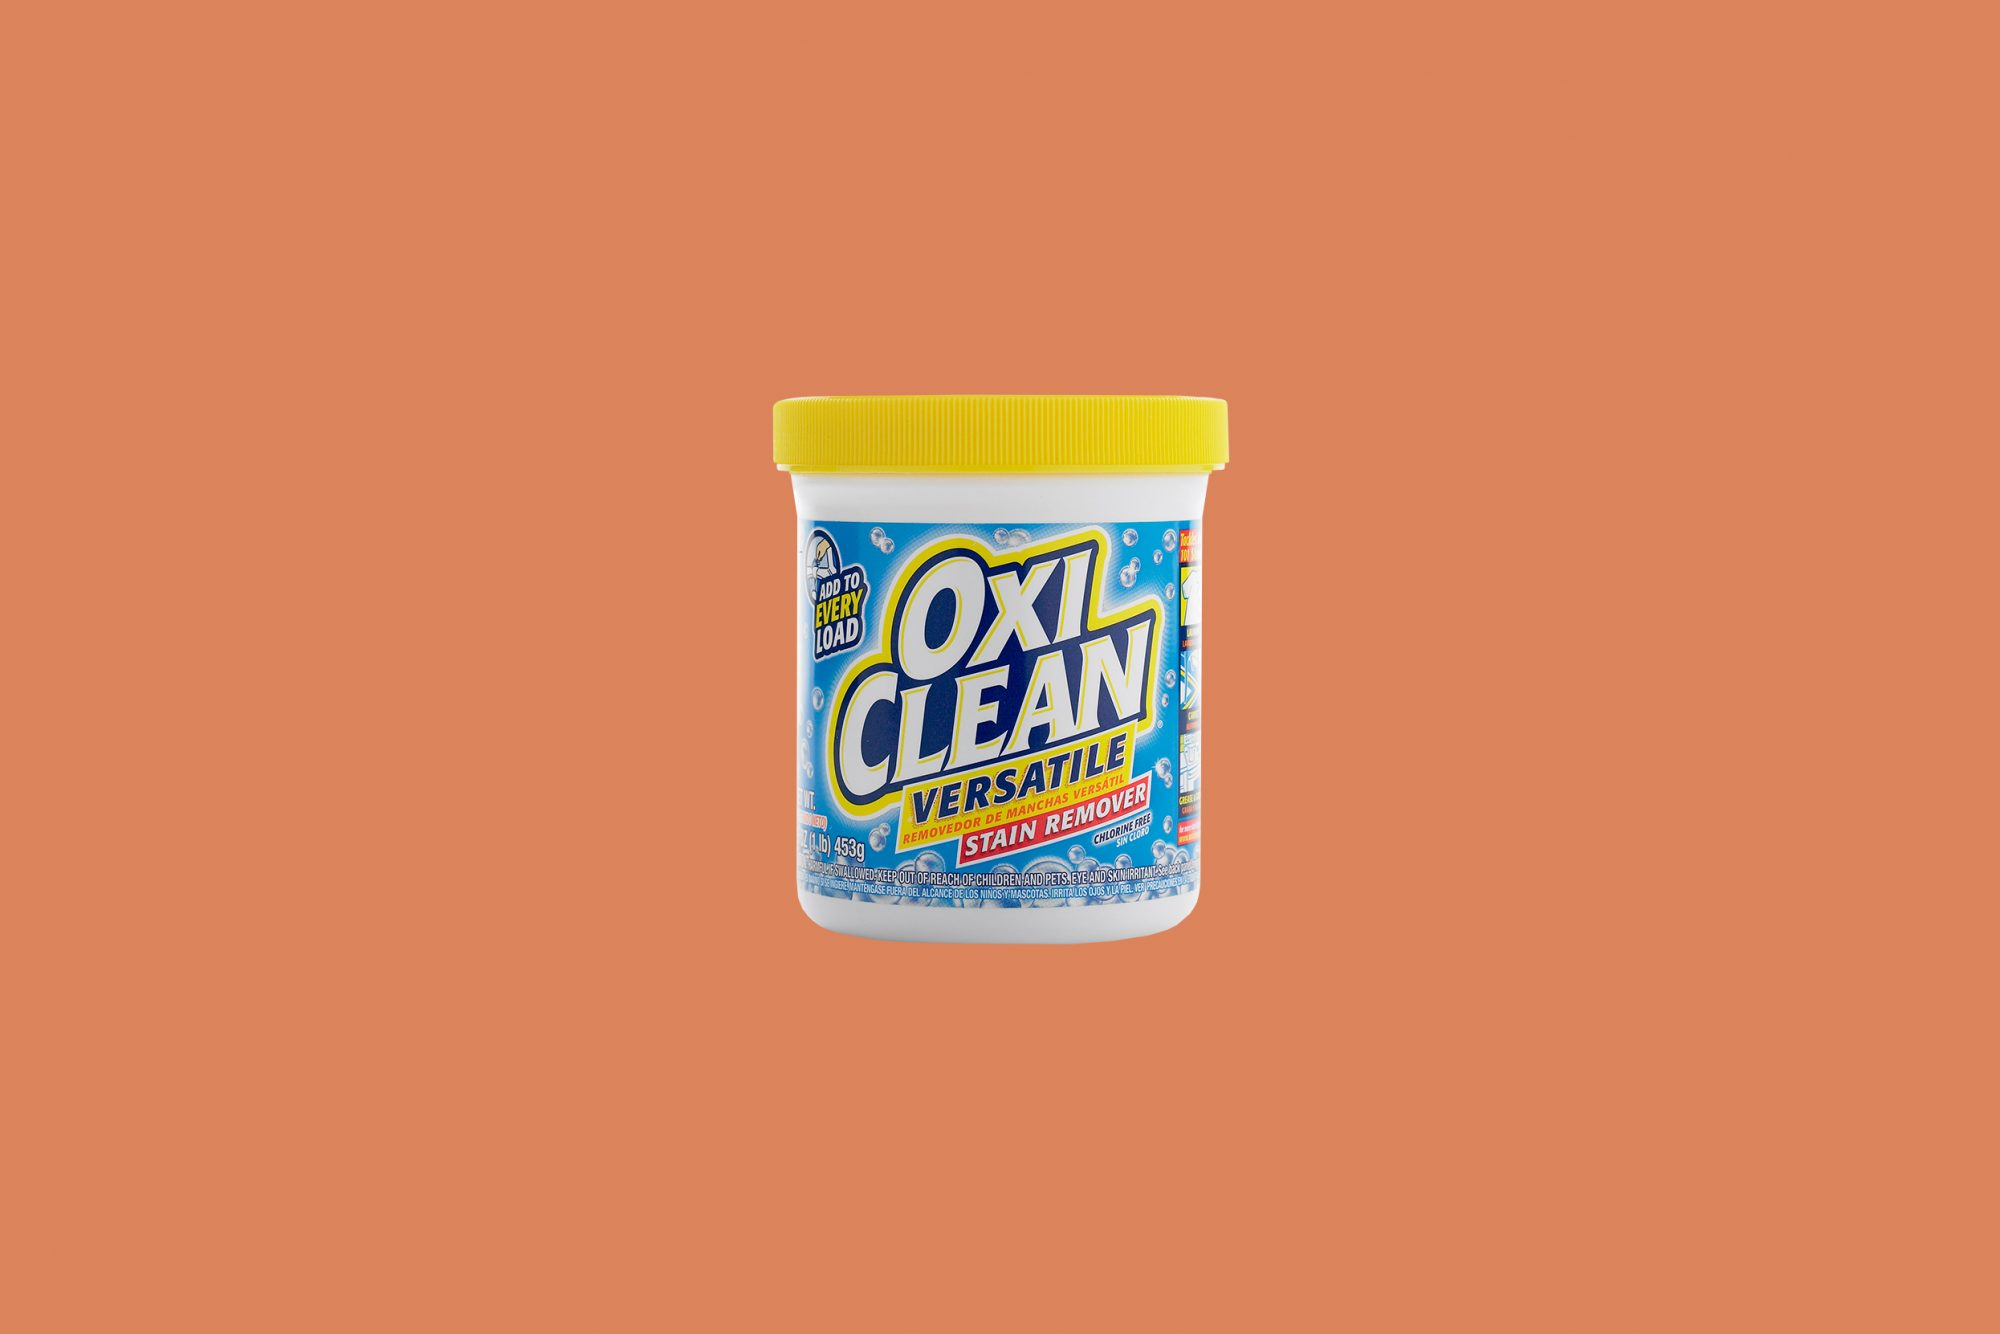 OxiClean Versatile Stain Remover Powder